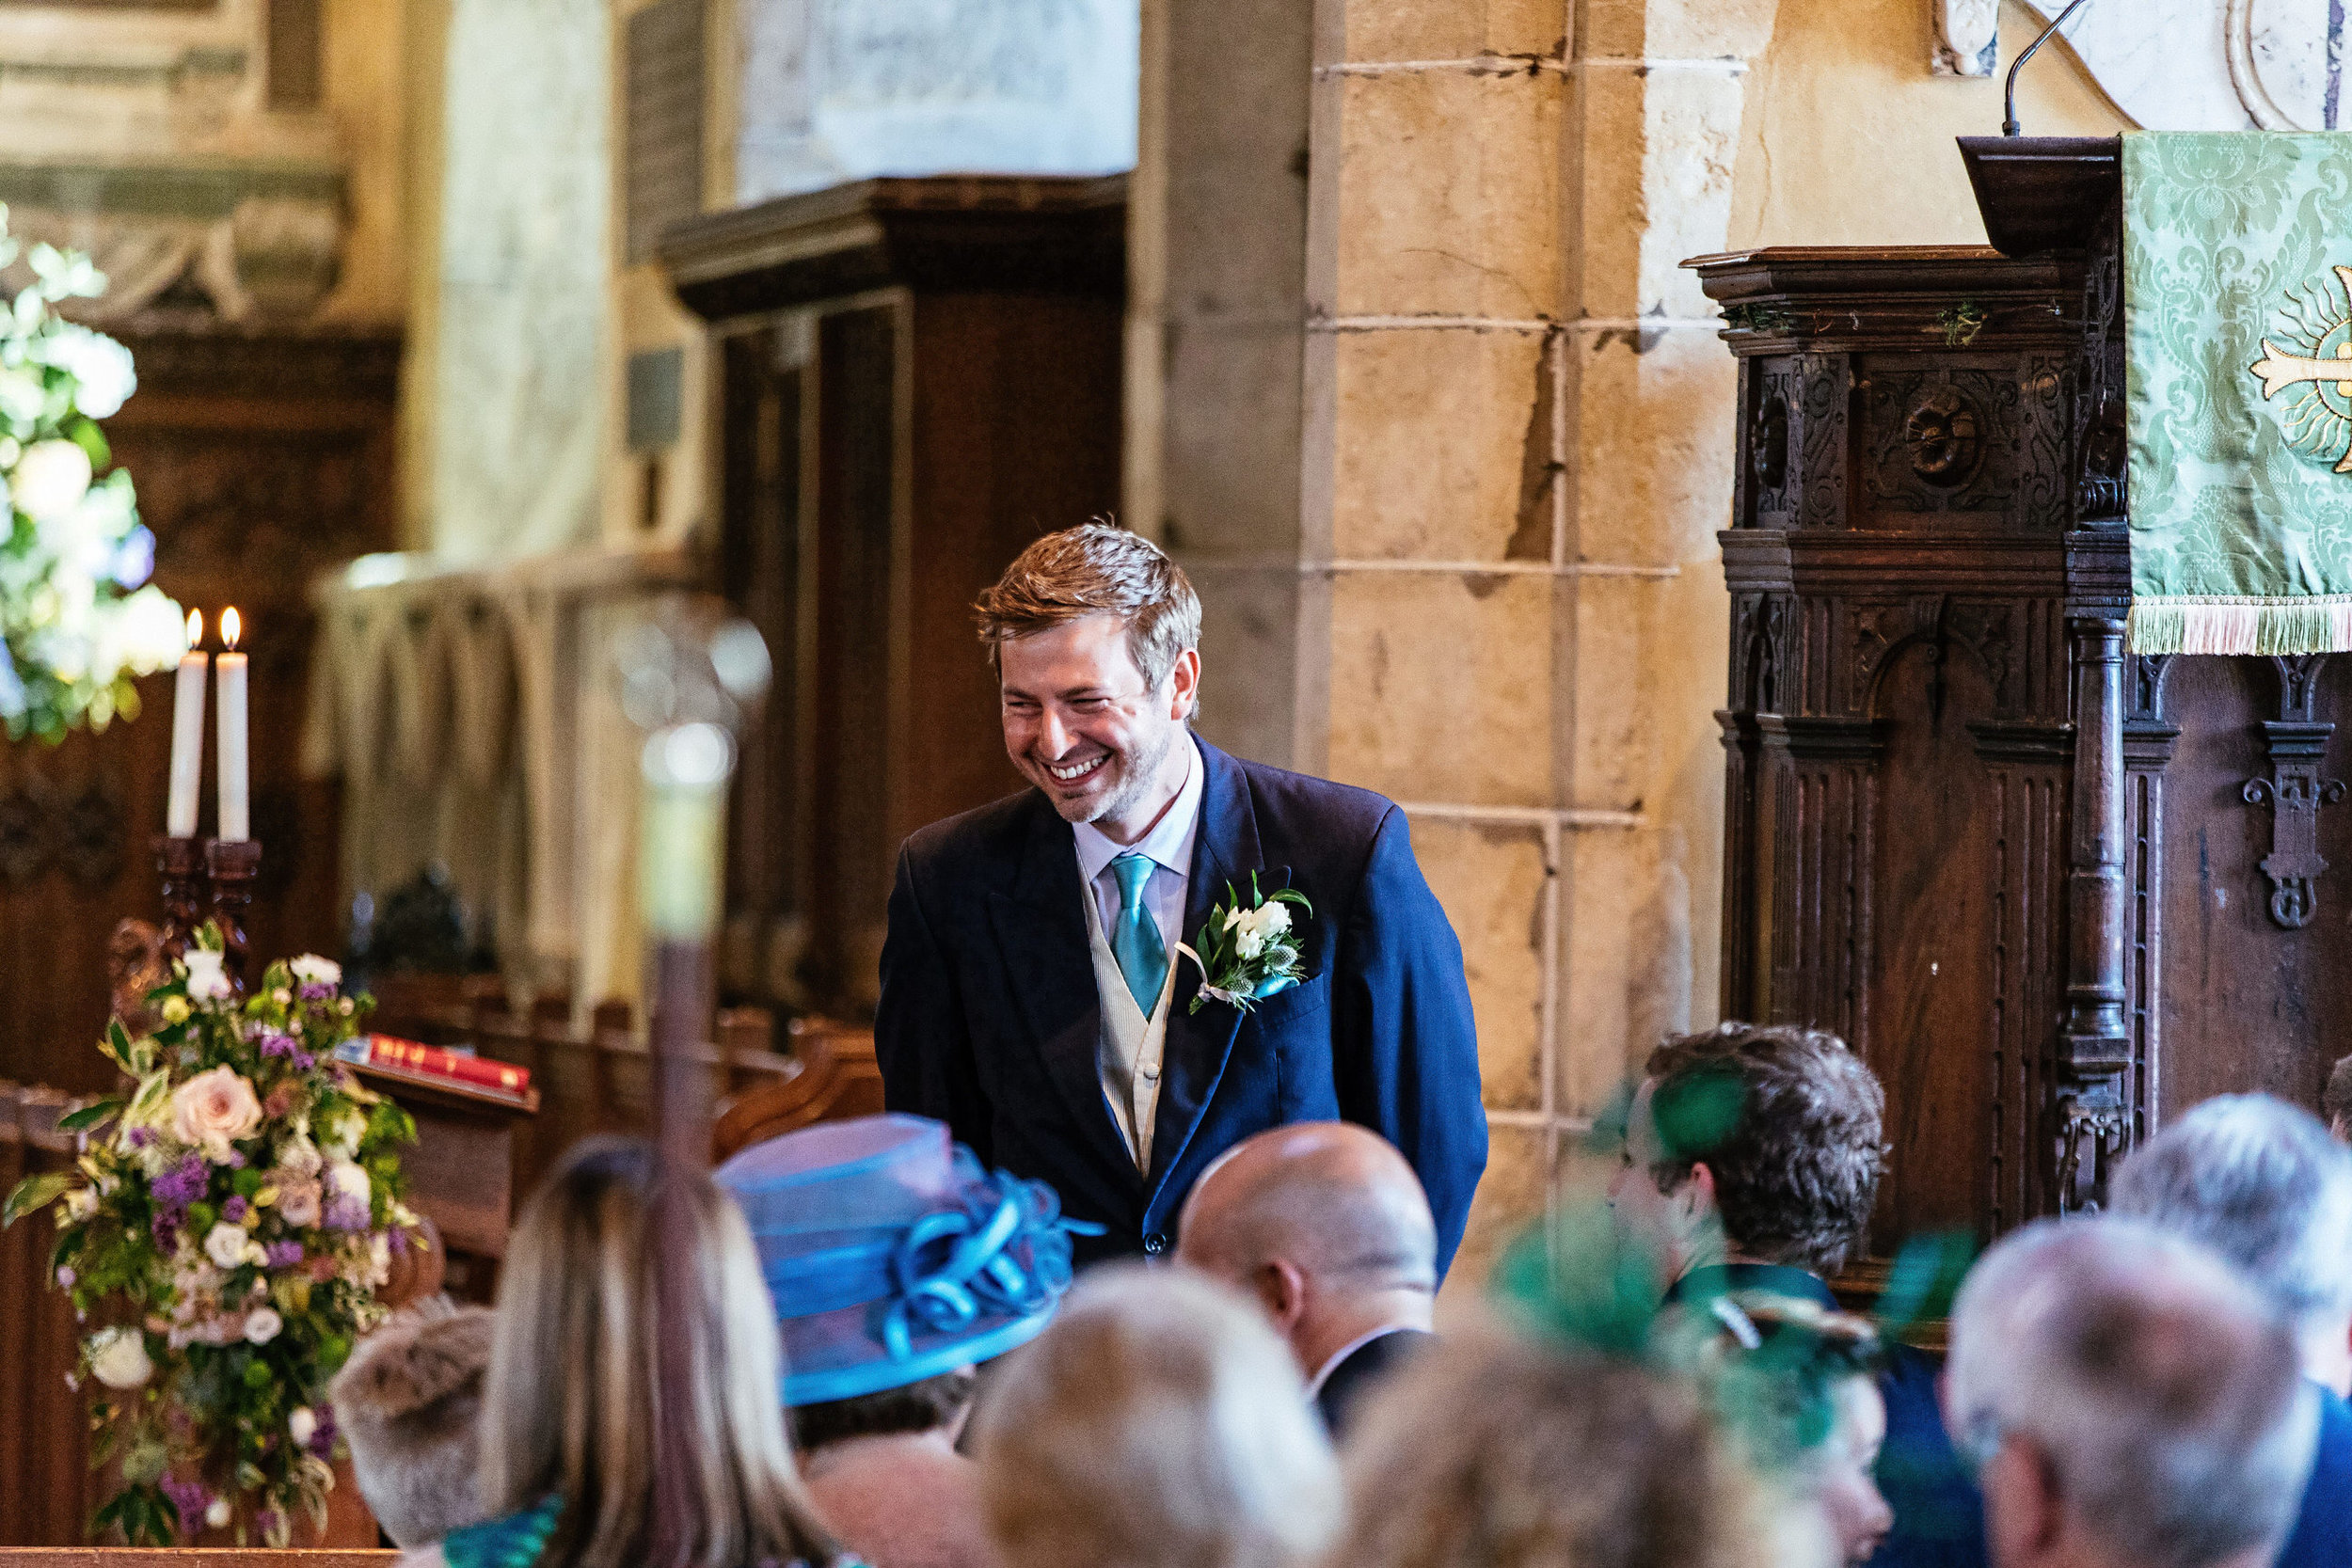 Biddenden Wedding Photographer 0041.jpg